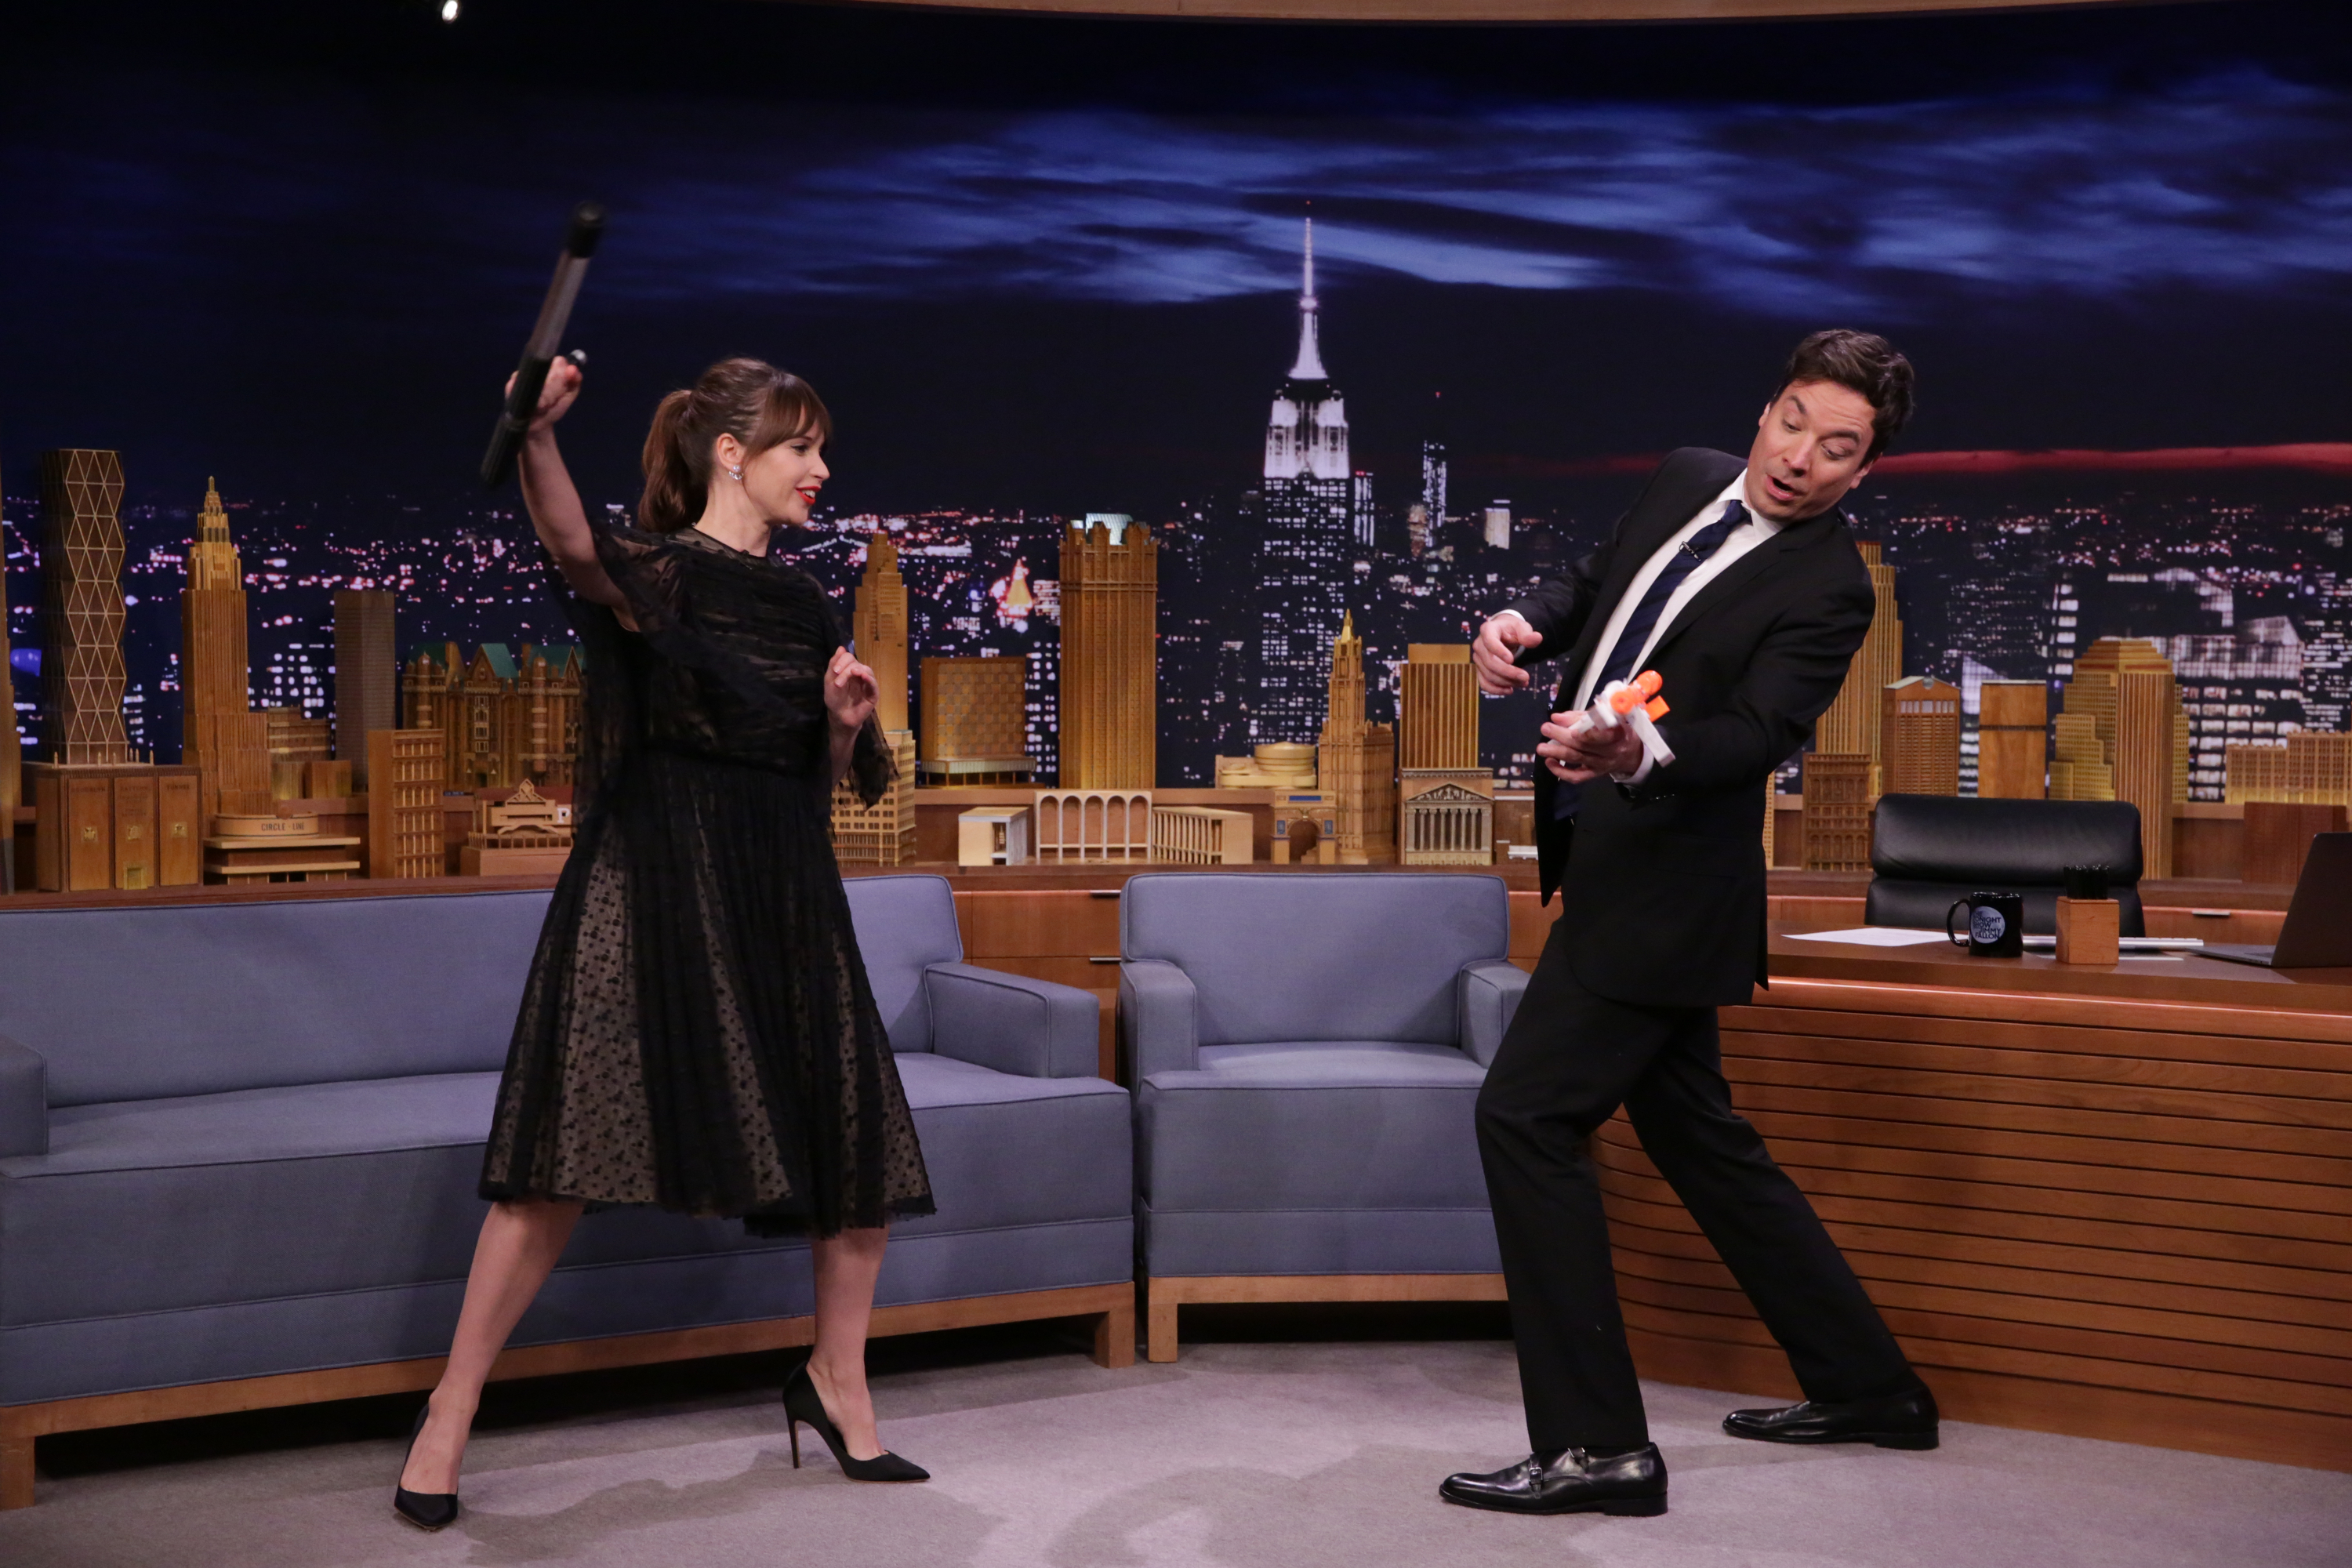 THE TONIGHT SHOW STARRING JIMMY FALLON -- Episode 0581 -- Pictured: (l-r) Actress Felicity Jones demonstrates her martial arts training during an interview with host Jimmy Fallon on November 30, 2016 -- (Photo by: Andrew Lipovsky/NBC/NBCU Photo Bank via Getty Images)